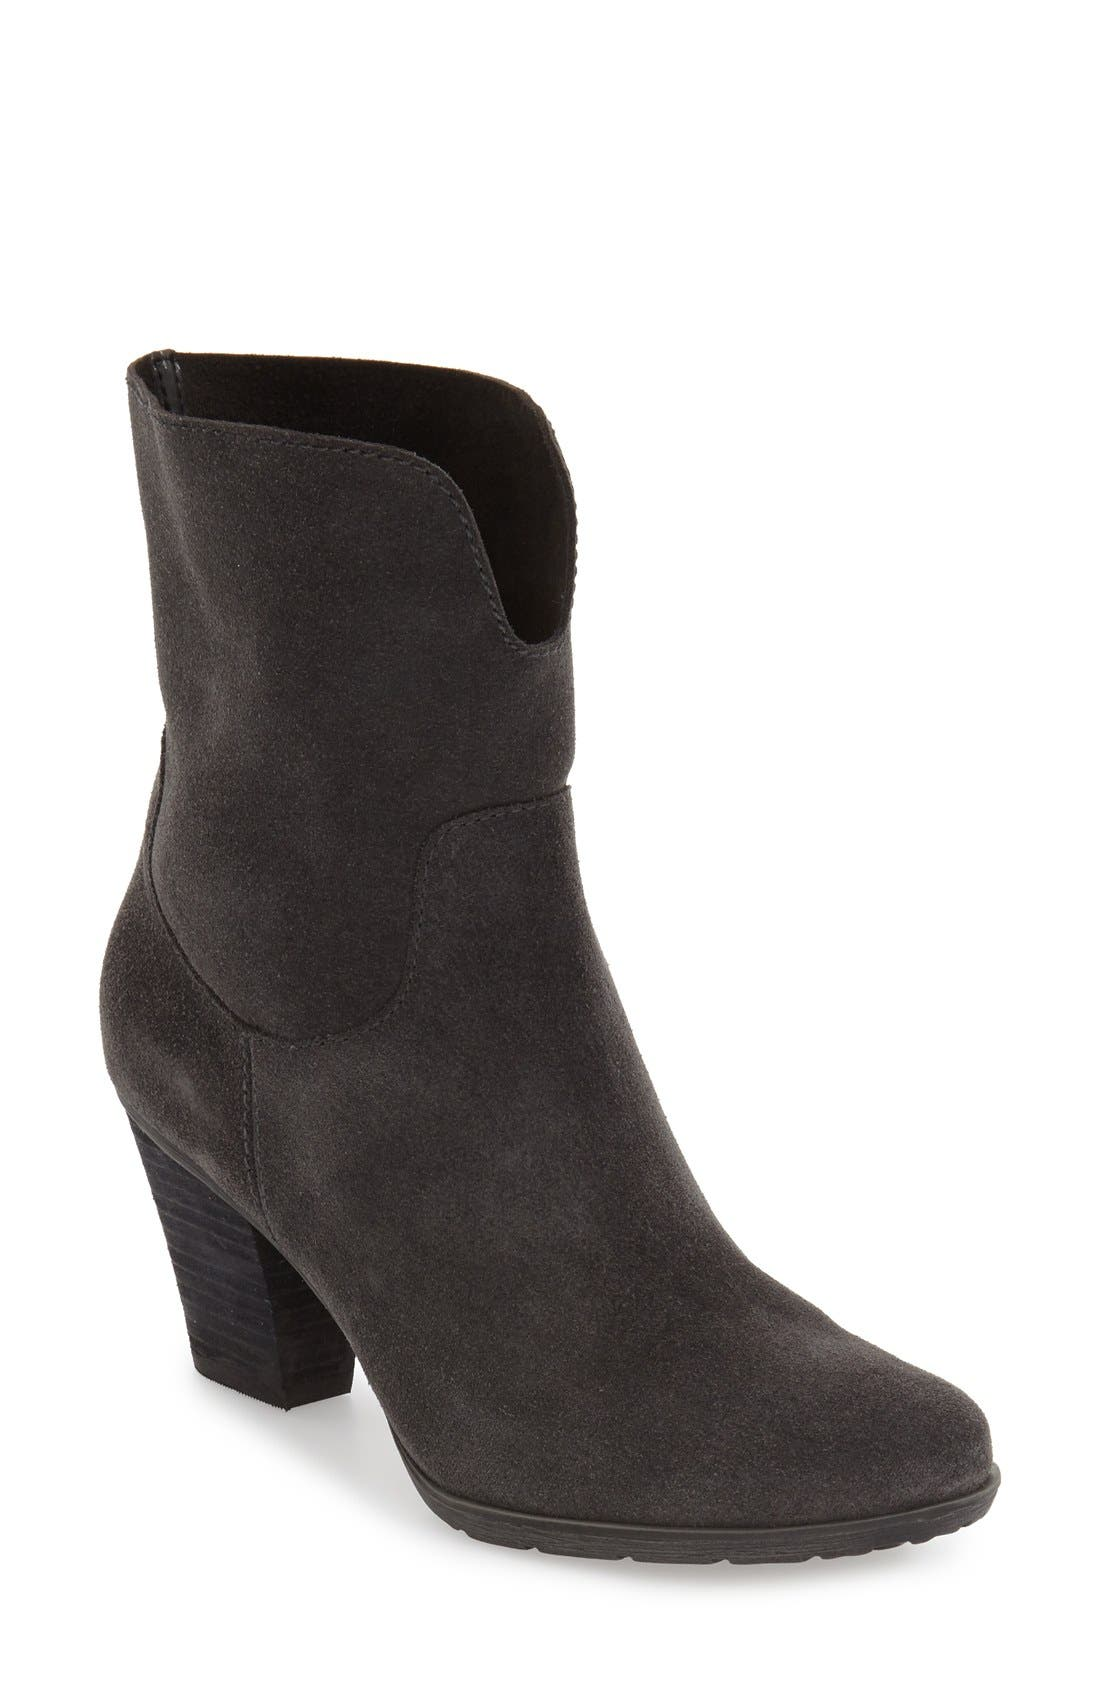 Blondo Fay Waterproof Ankle Boot (Women)